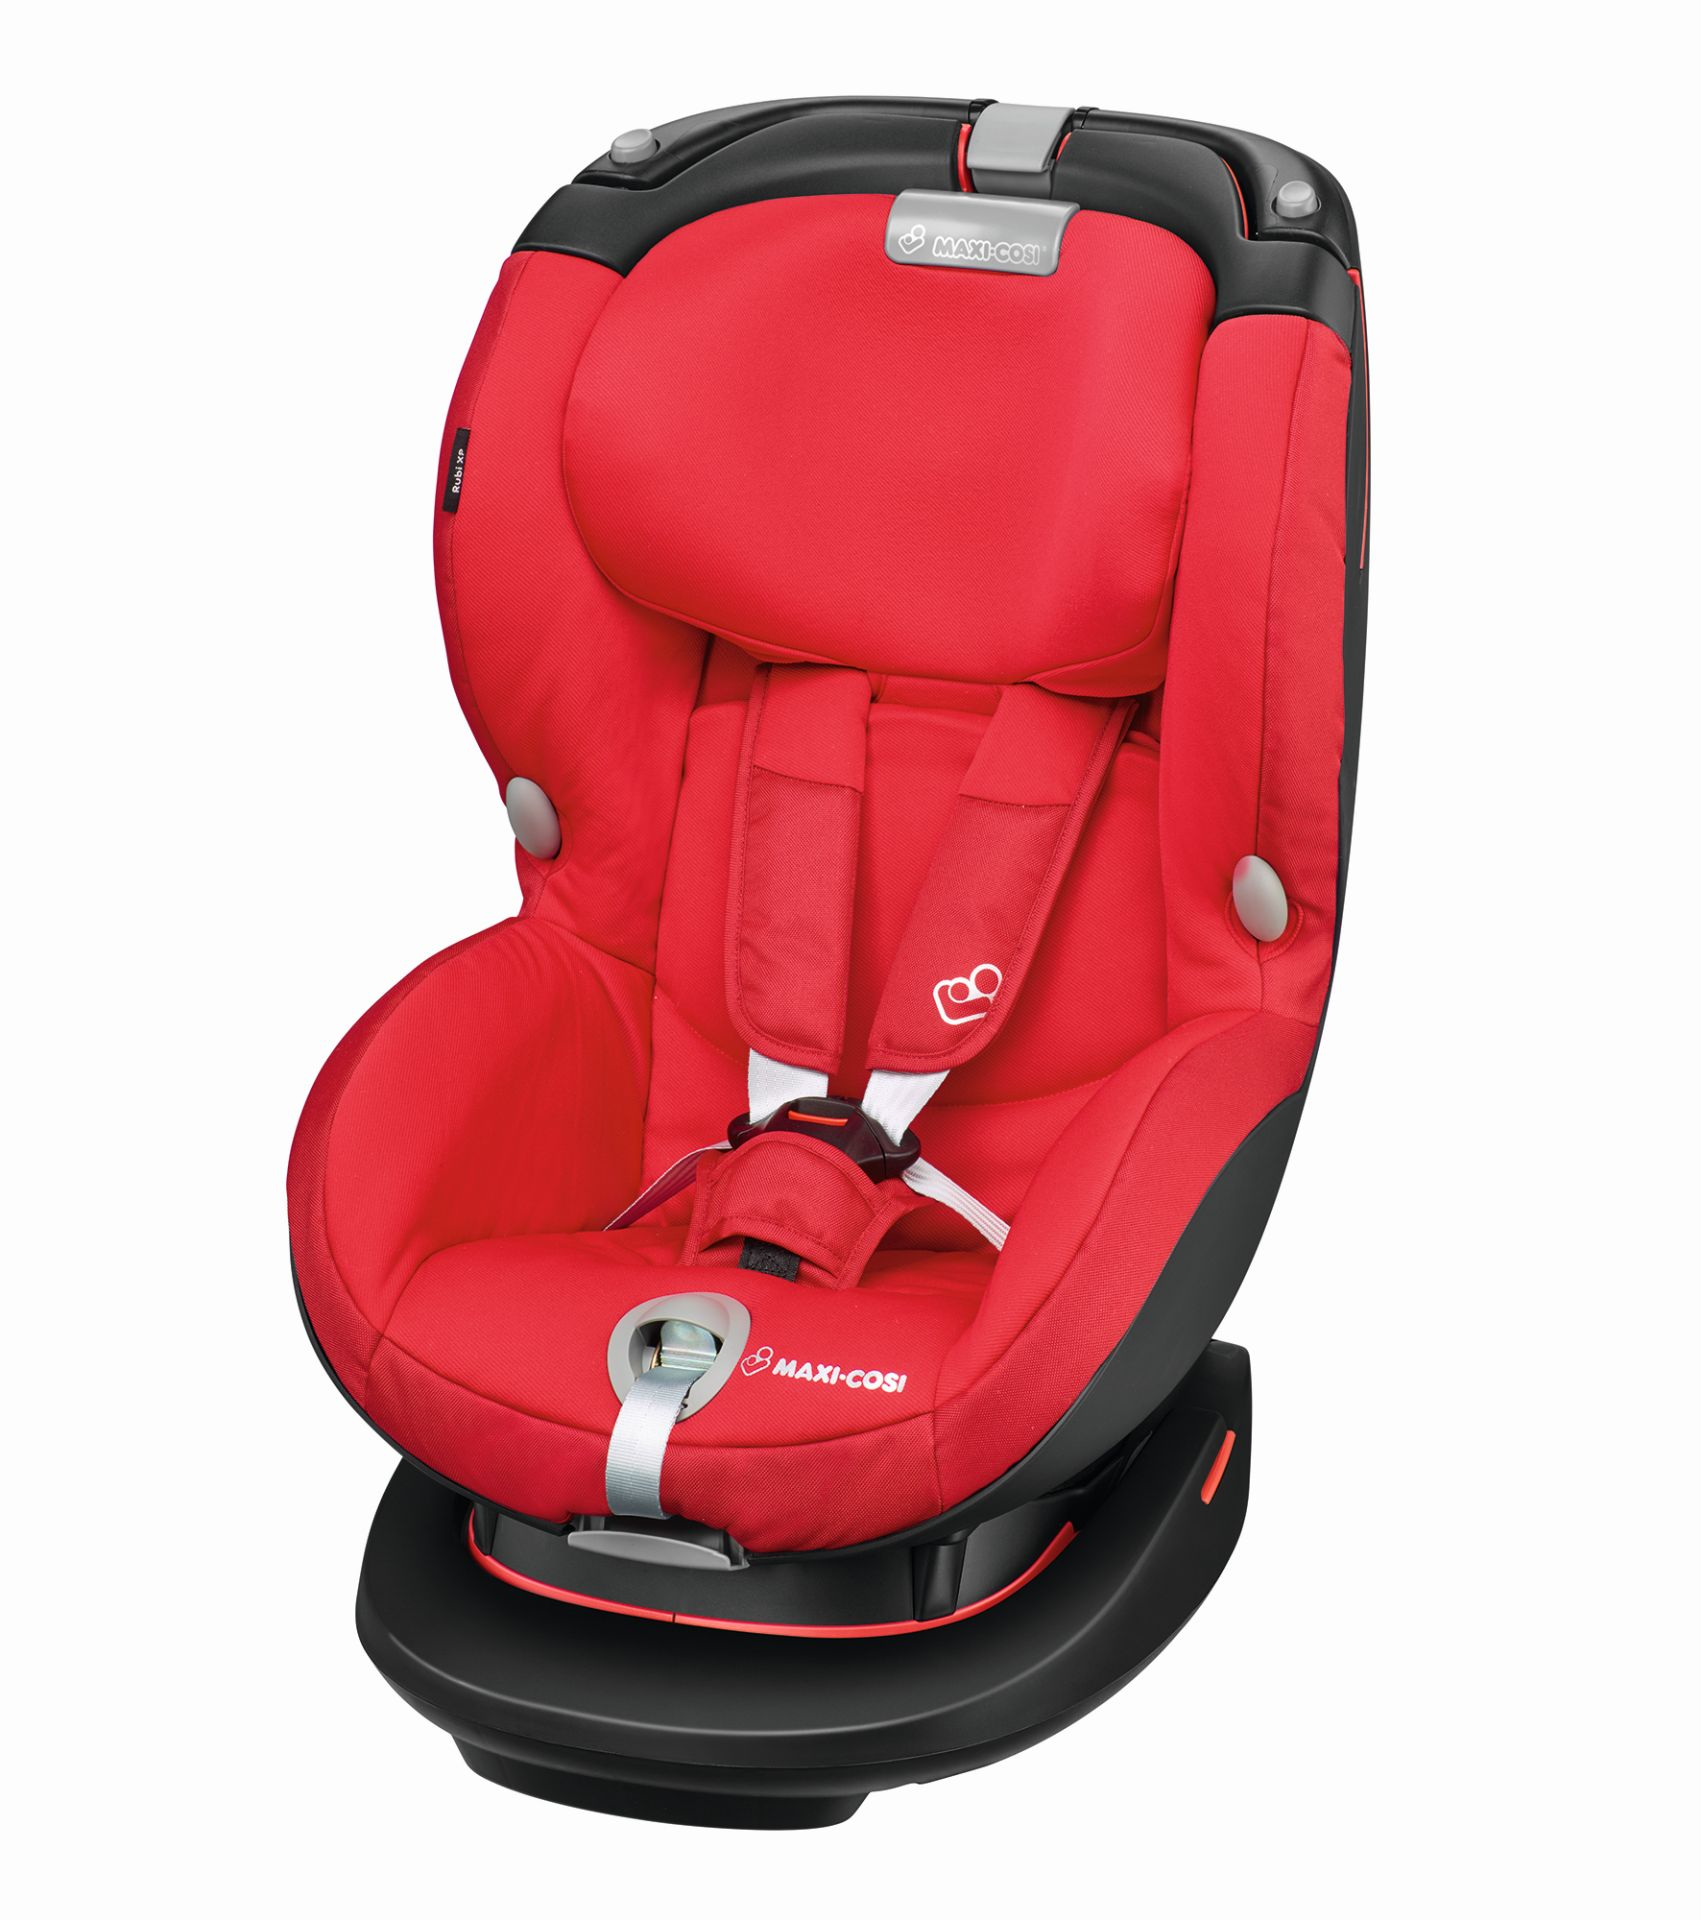 maxi cosi child car seat rubi xp 2017 poppy red buy at kidsroom car seats. Black Bedroom Furniture Sets. Home Design Ideas